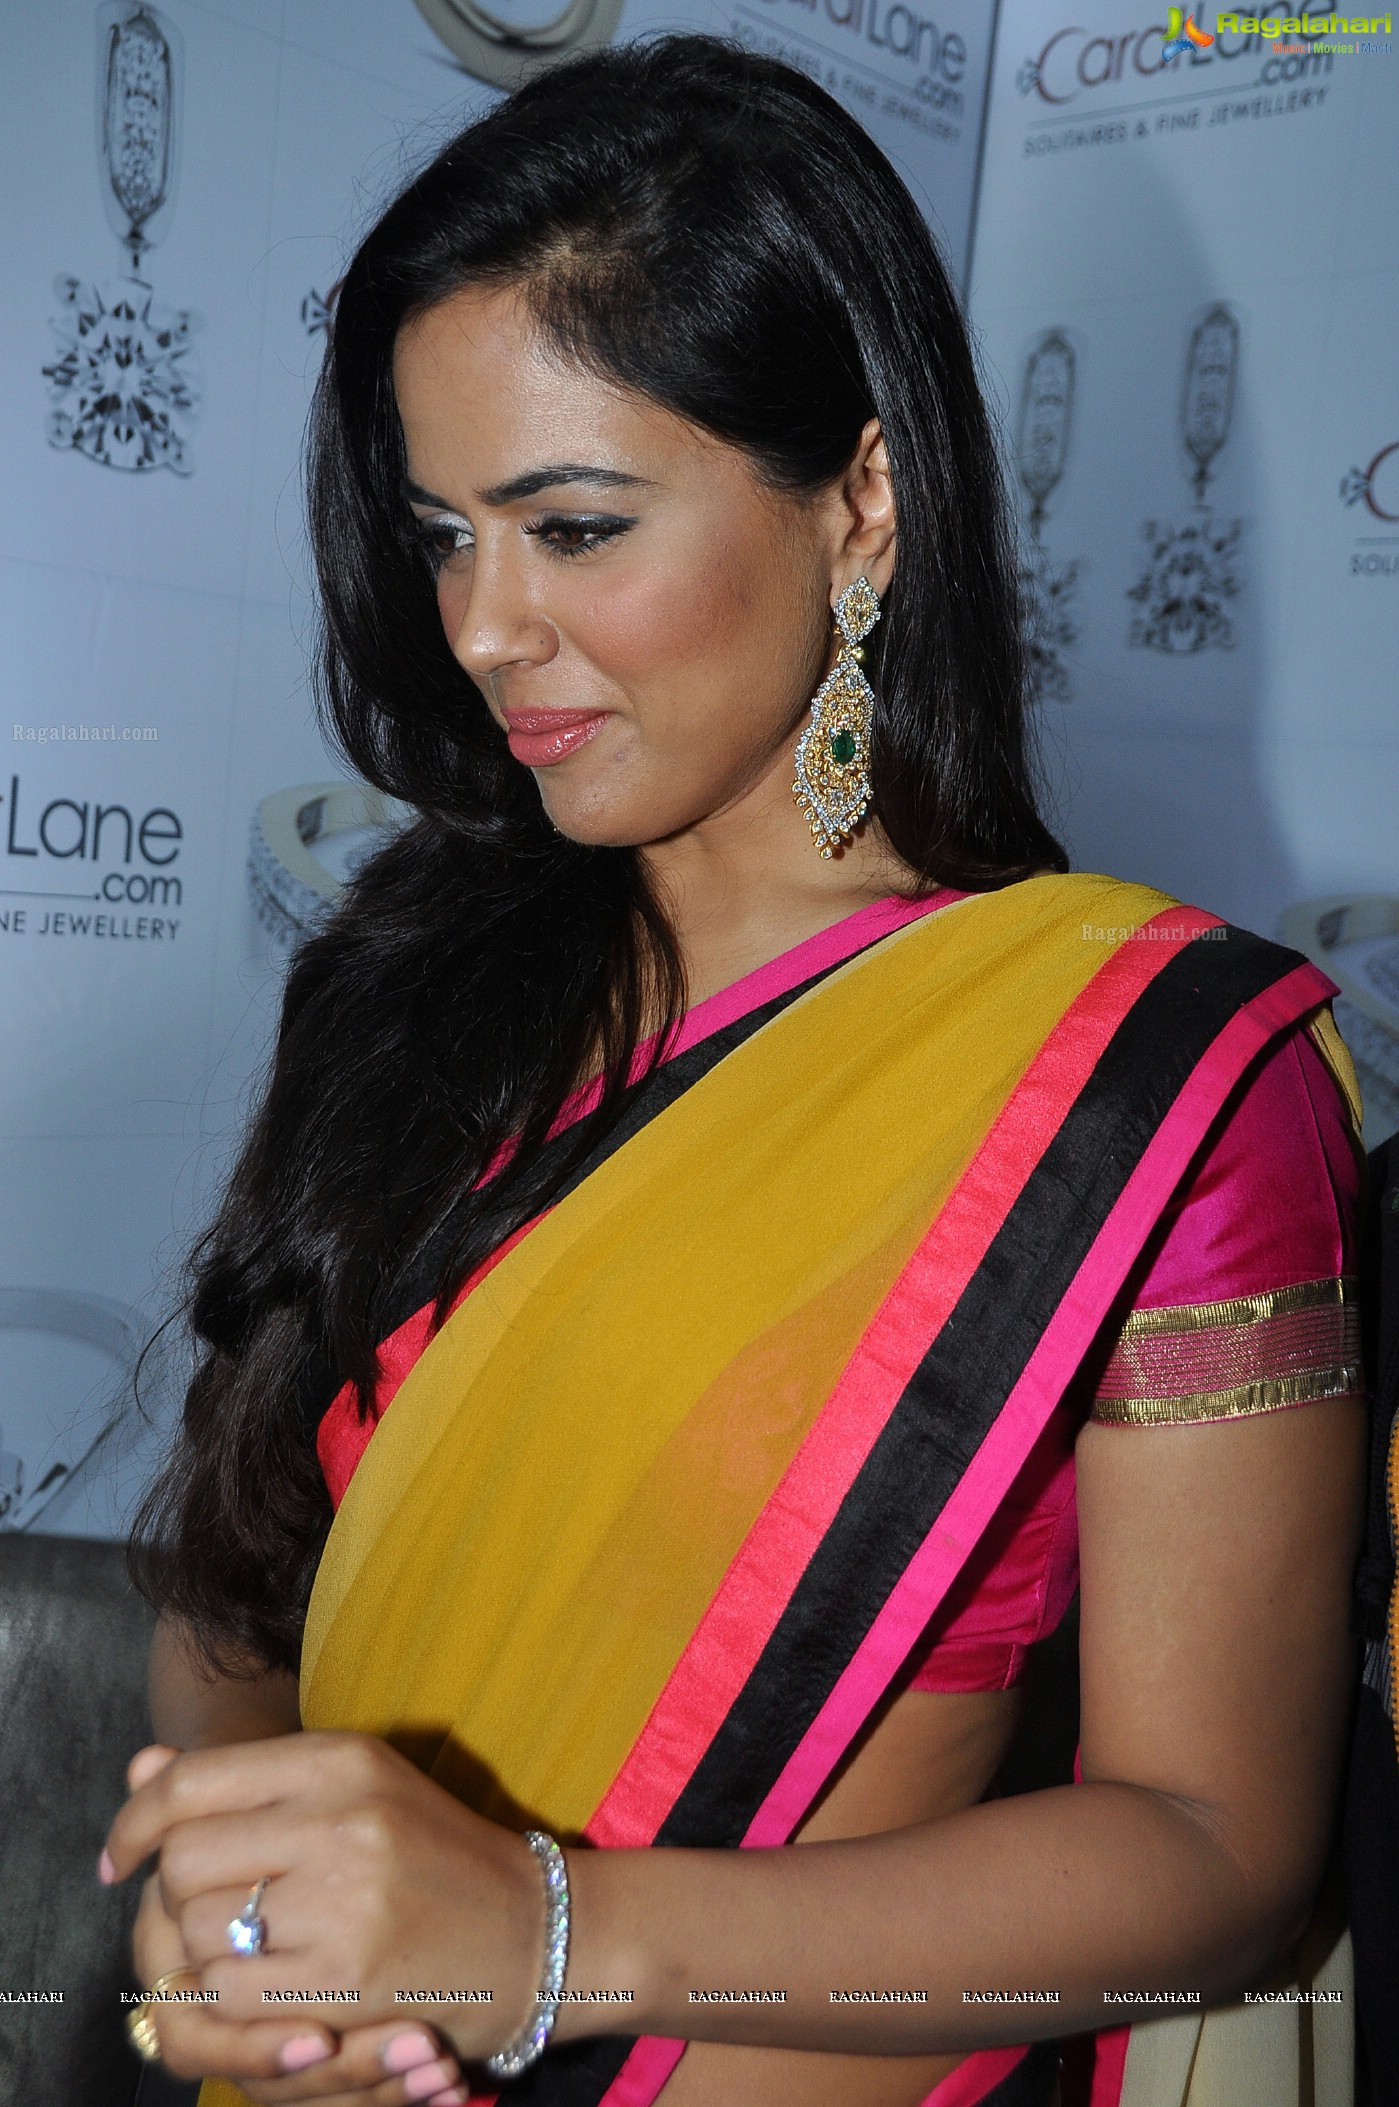 Sameera Reddy Posters Image 20 Tollywood Actress Galleryimages